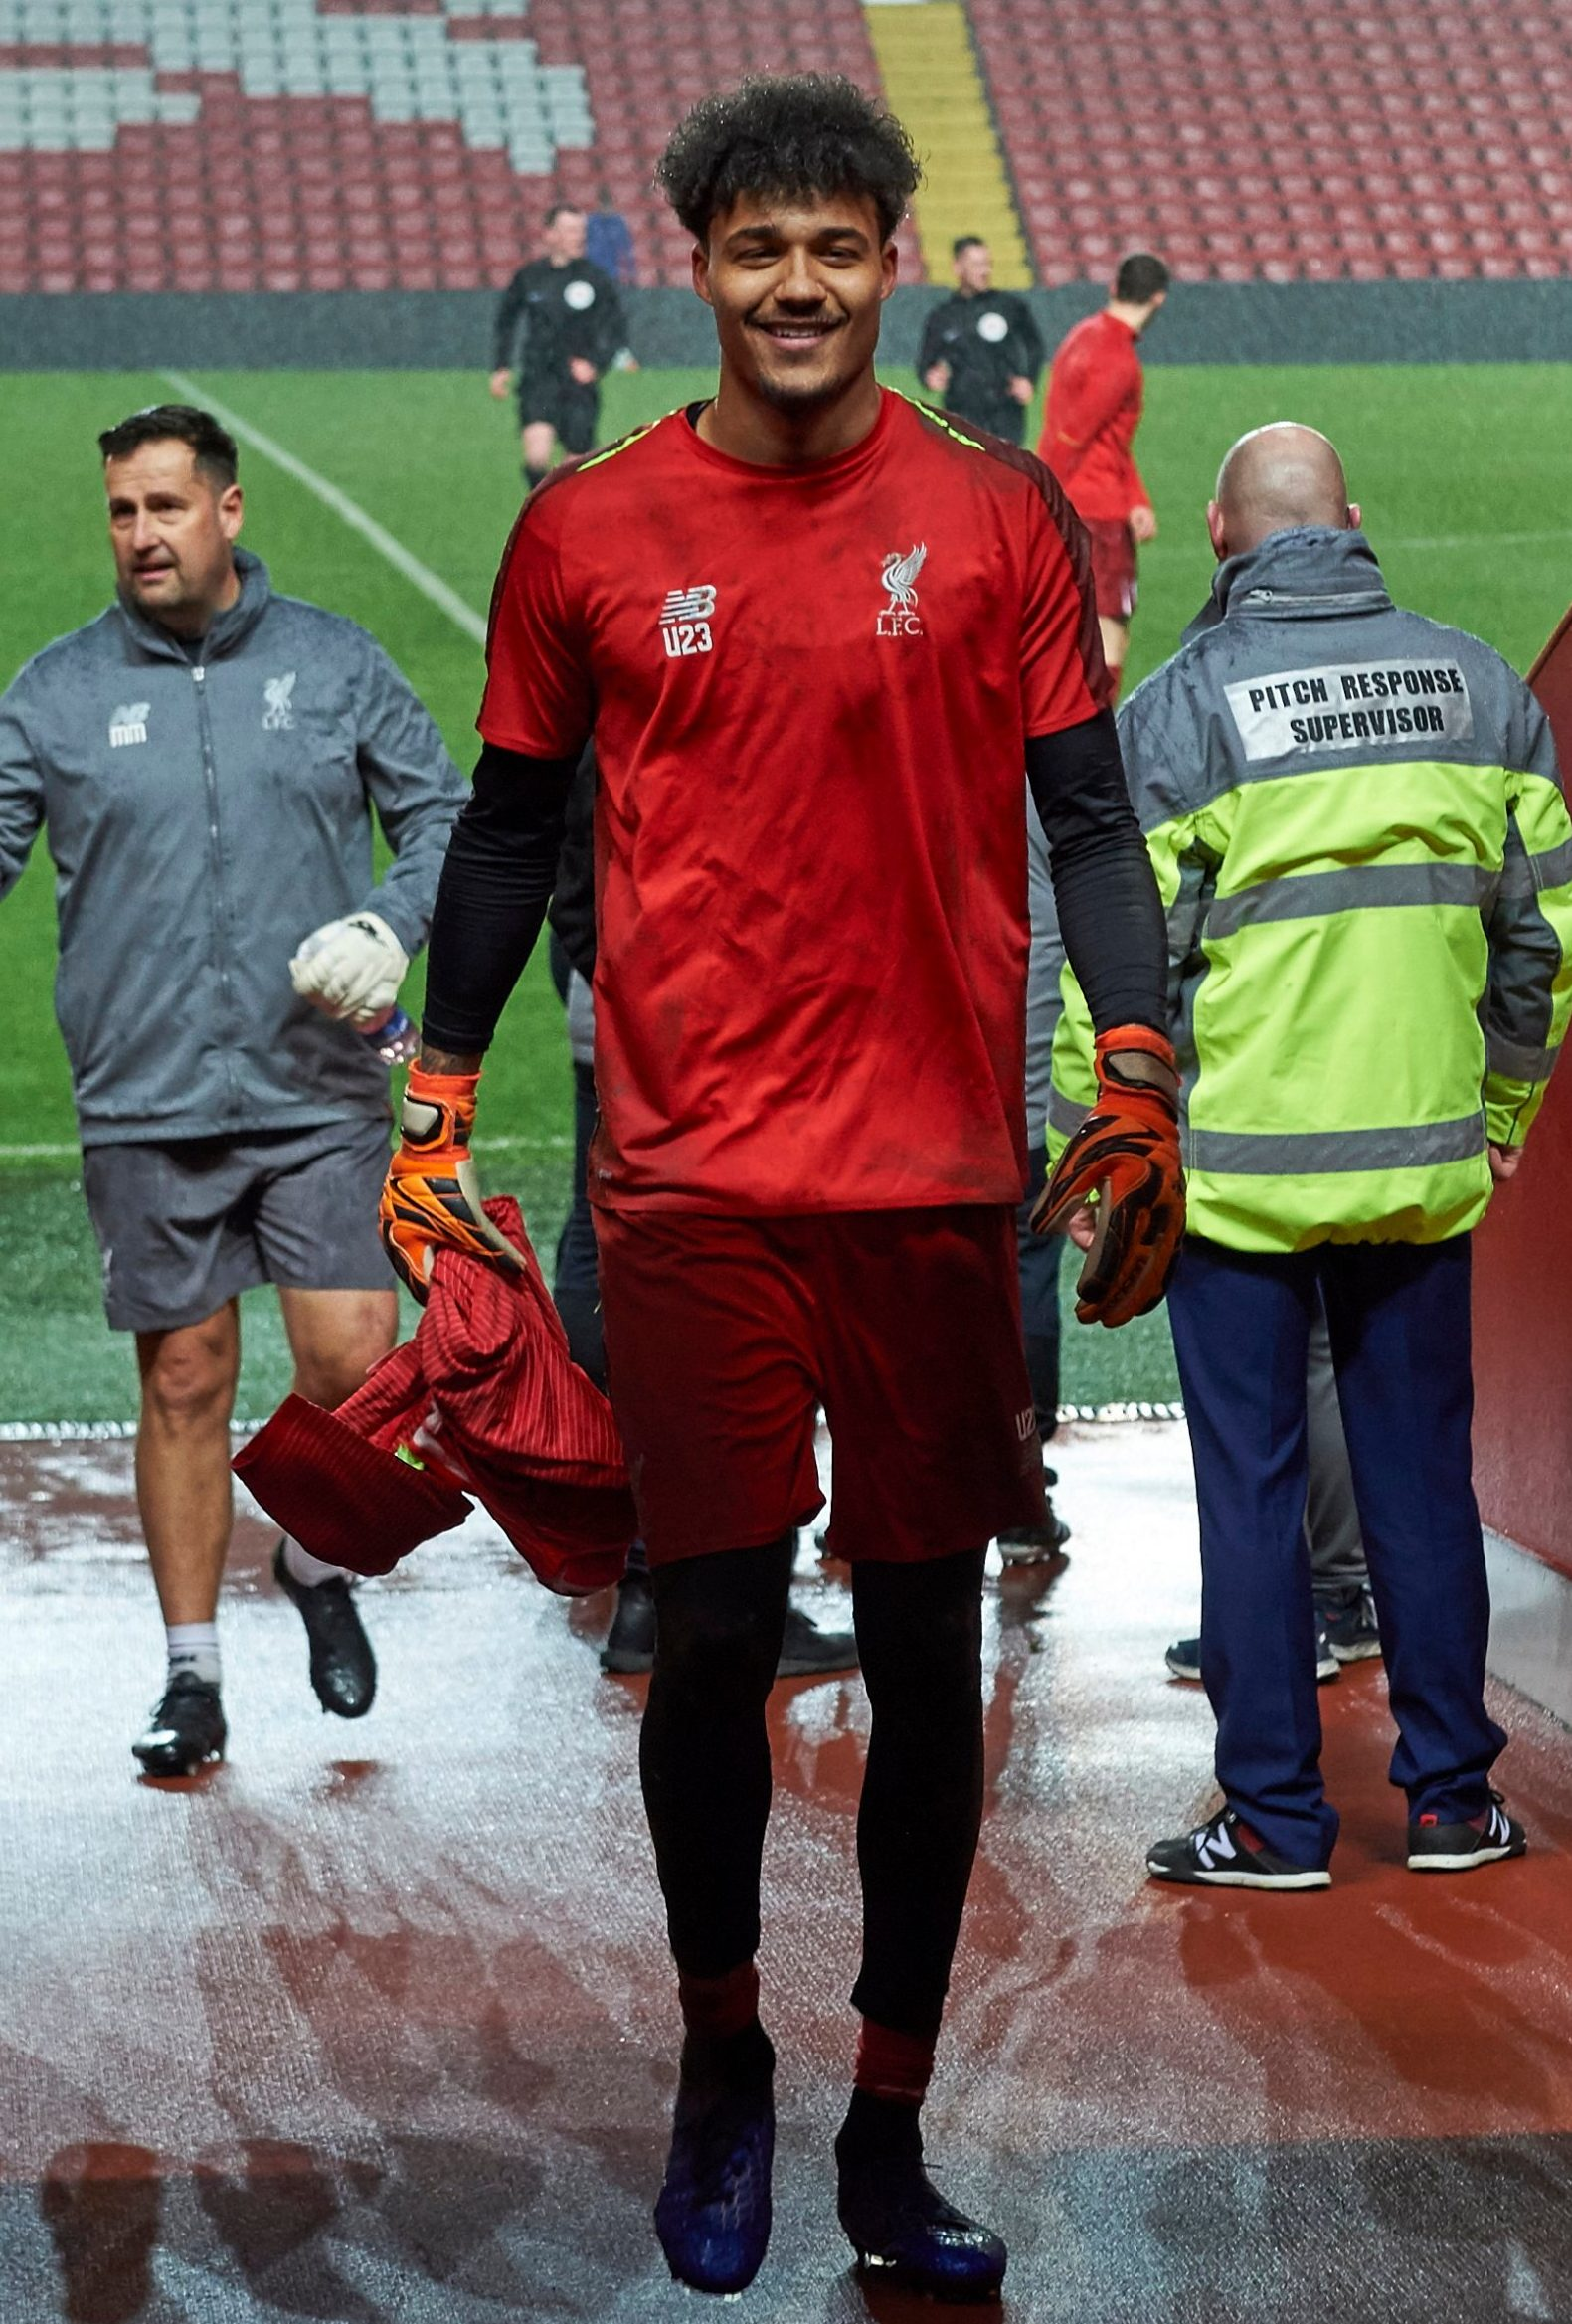 LIVERPOOL, ENGLAND - MARCH 04: (THE SUN OUT, THE SUN ON SUNDAY OUT) Shamal George of Liverpool before the PL2 game at Anfield on March 4, 2019 in Liverpool, England. (Photo by Nick Taylor/Liverpool FC/Liverpool FC via Getty Images)